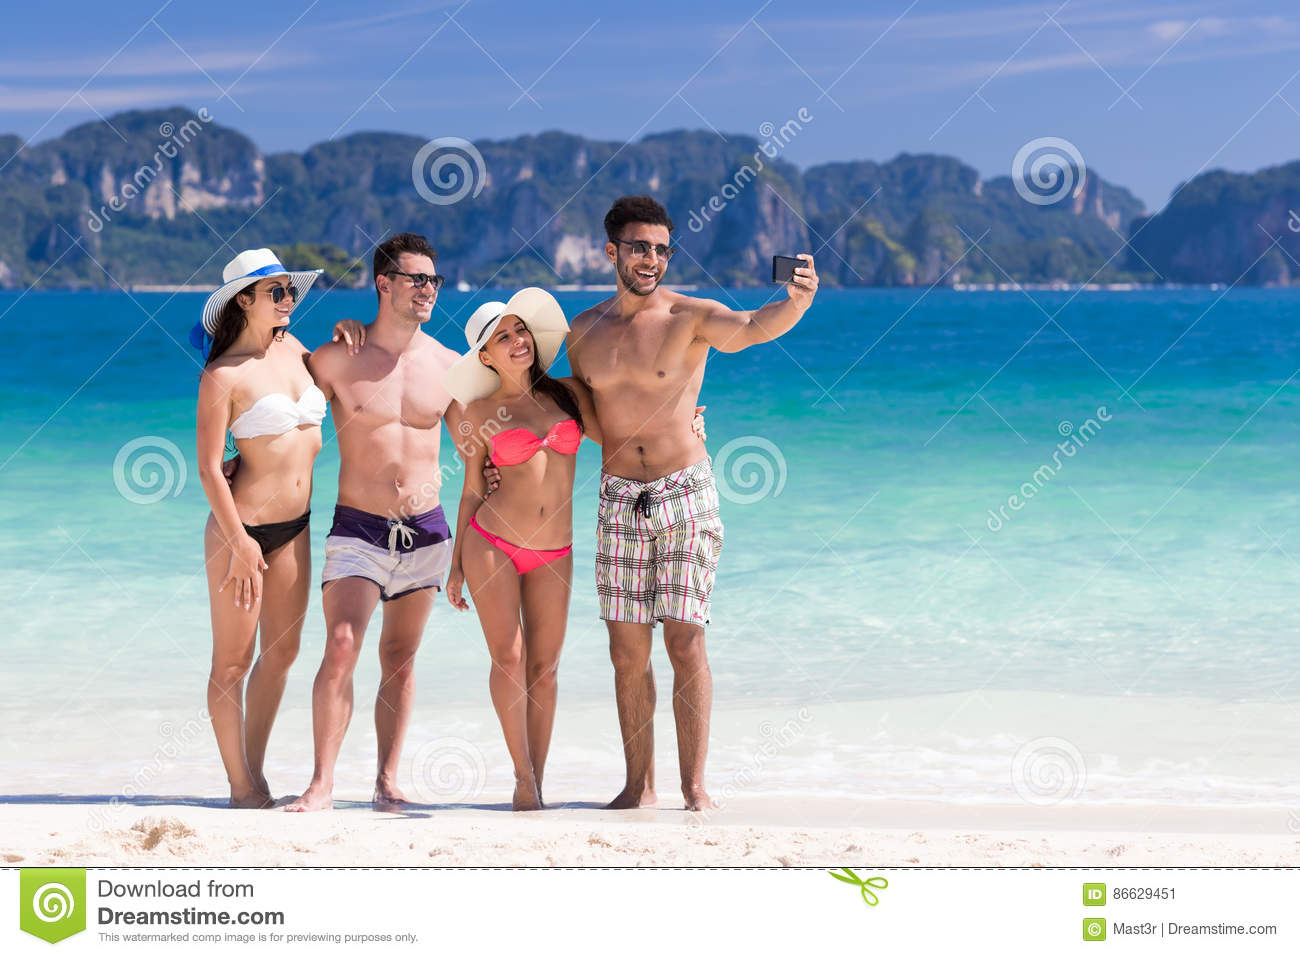 Young People Group On Beach Summer Vacation, Two Couple Happy Smiling Friends Taking Selfie Photo